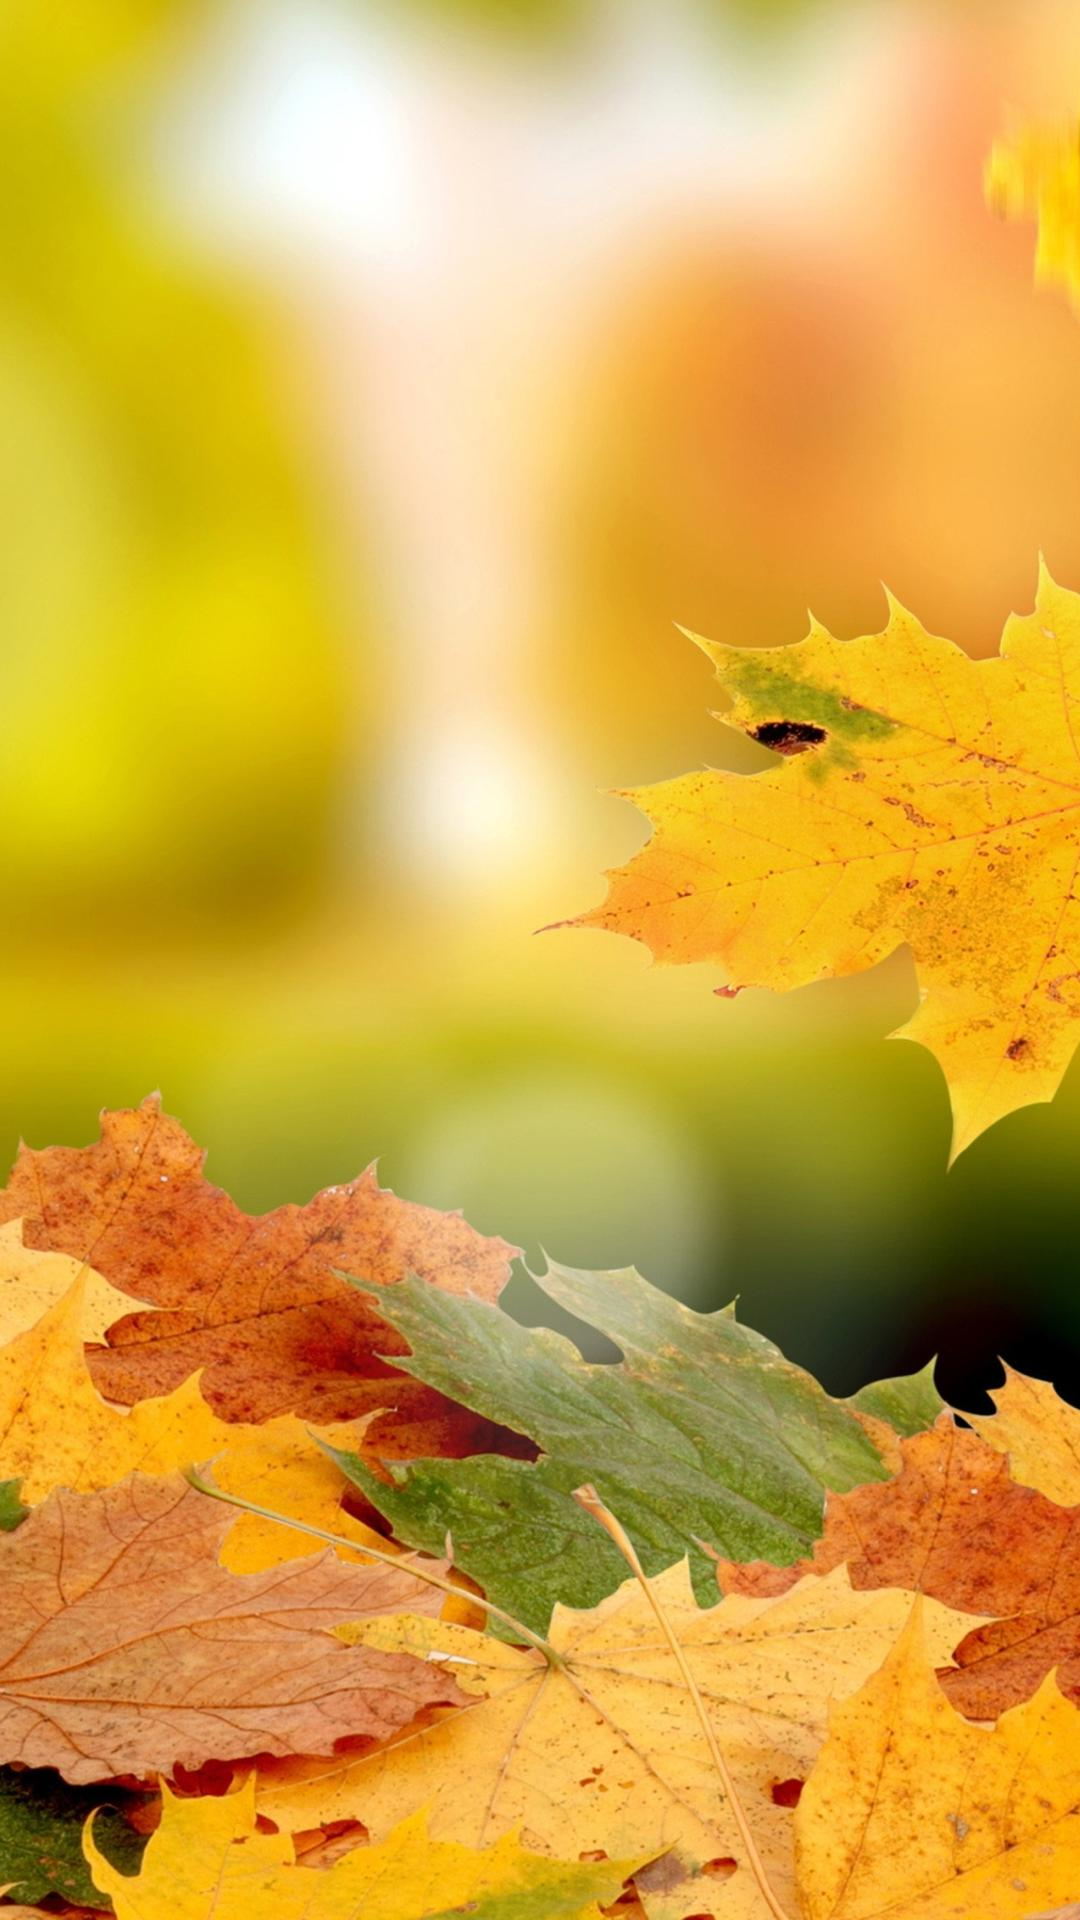 Free Fall Cell Phone Wallpapers Beautiful Carpet Of Autumn Leaves Hd Wallpaper Wallpaper